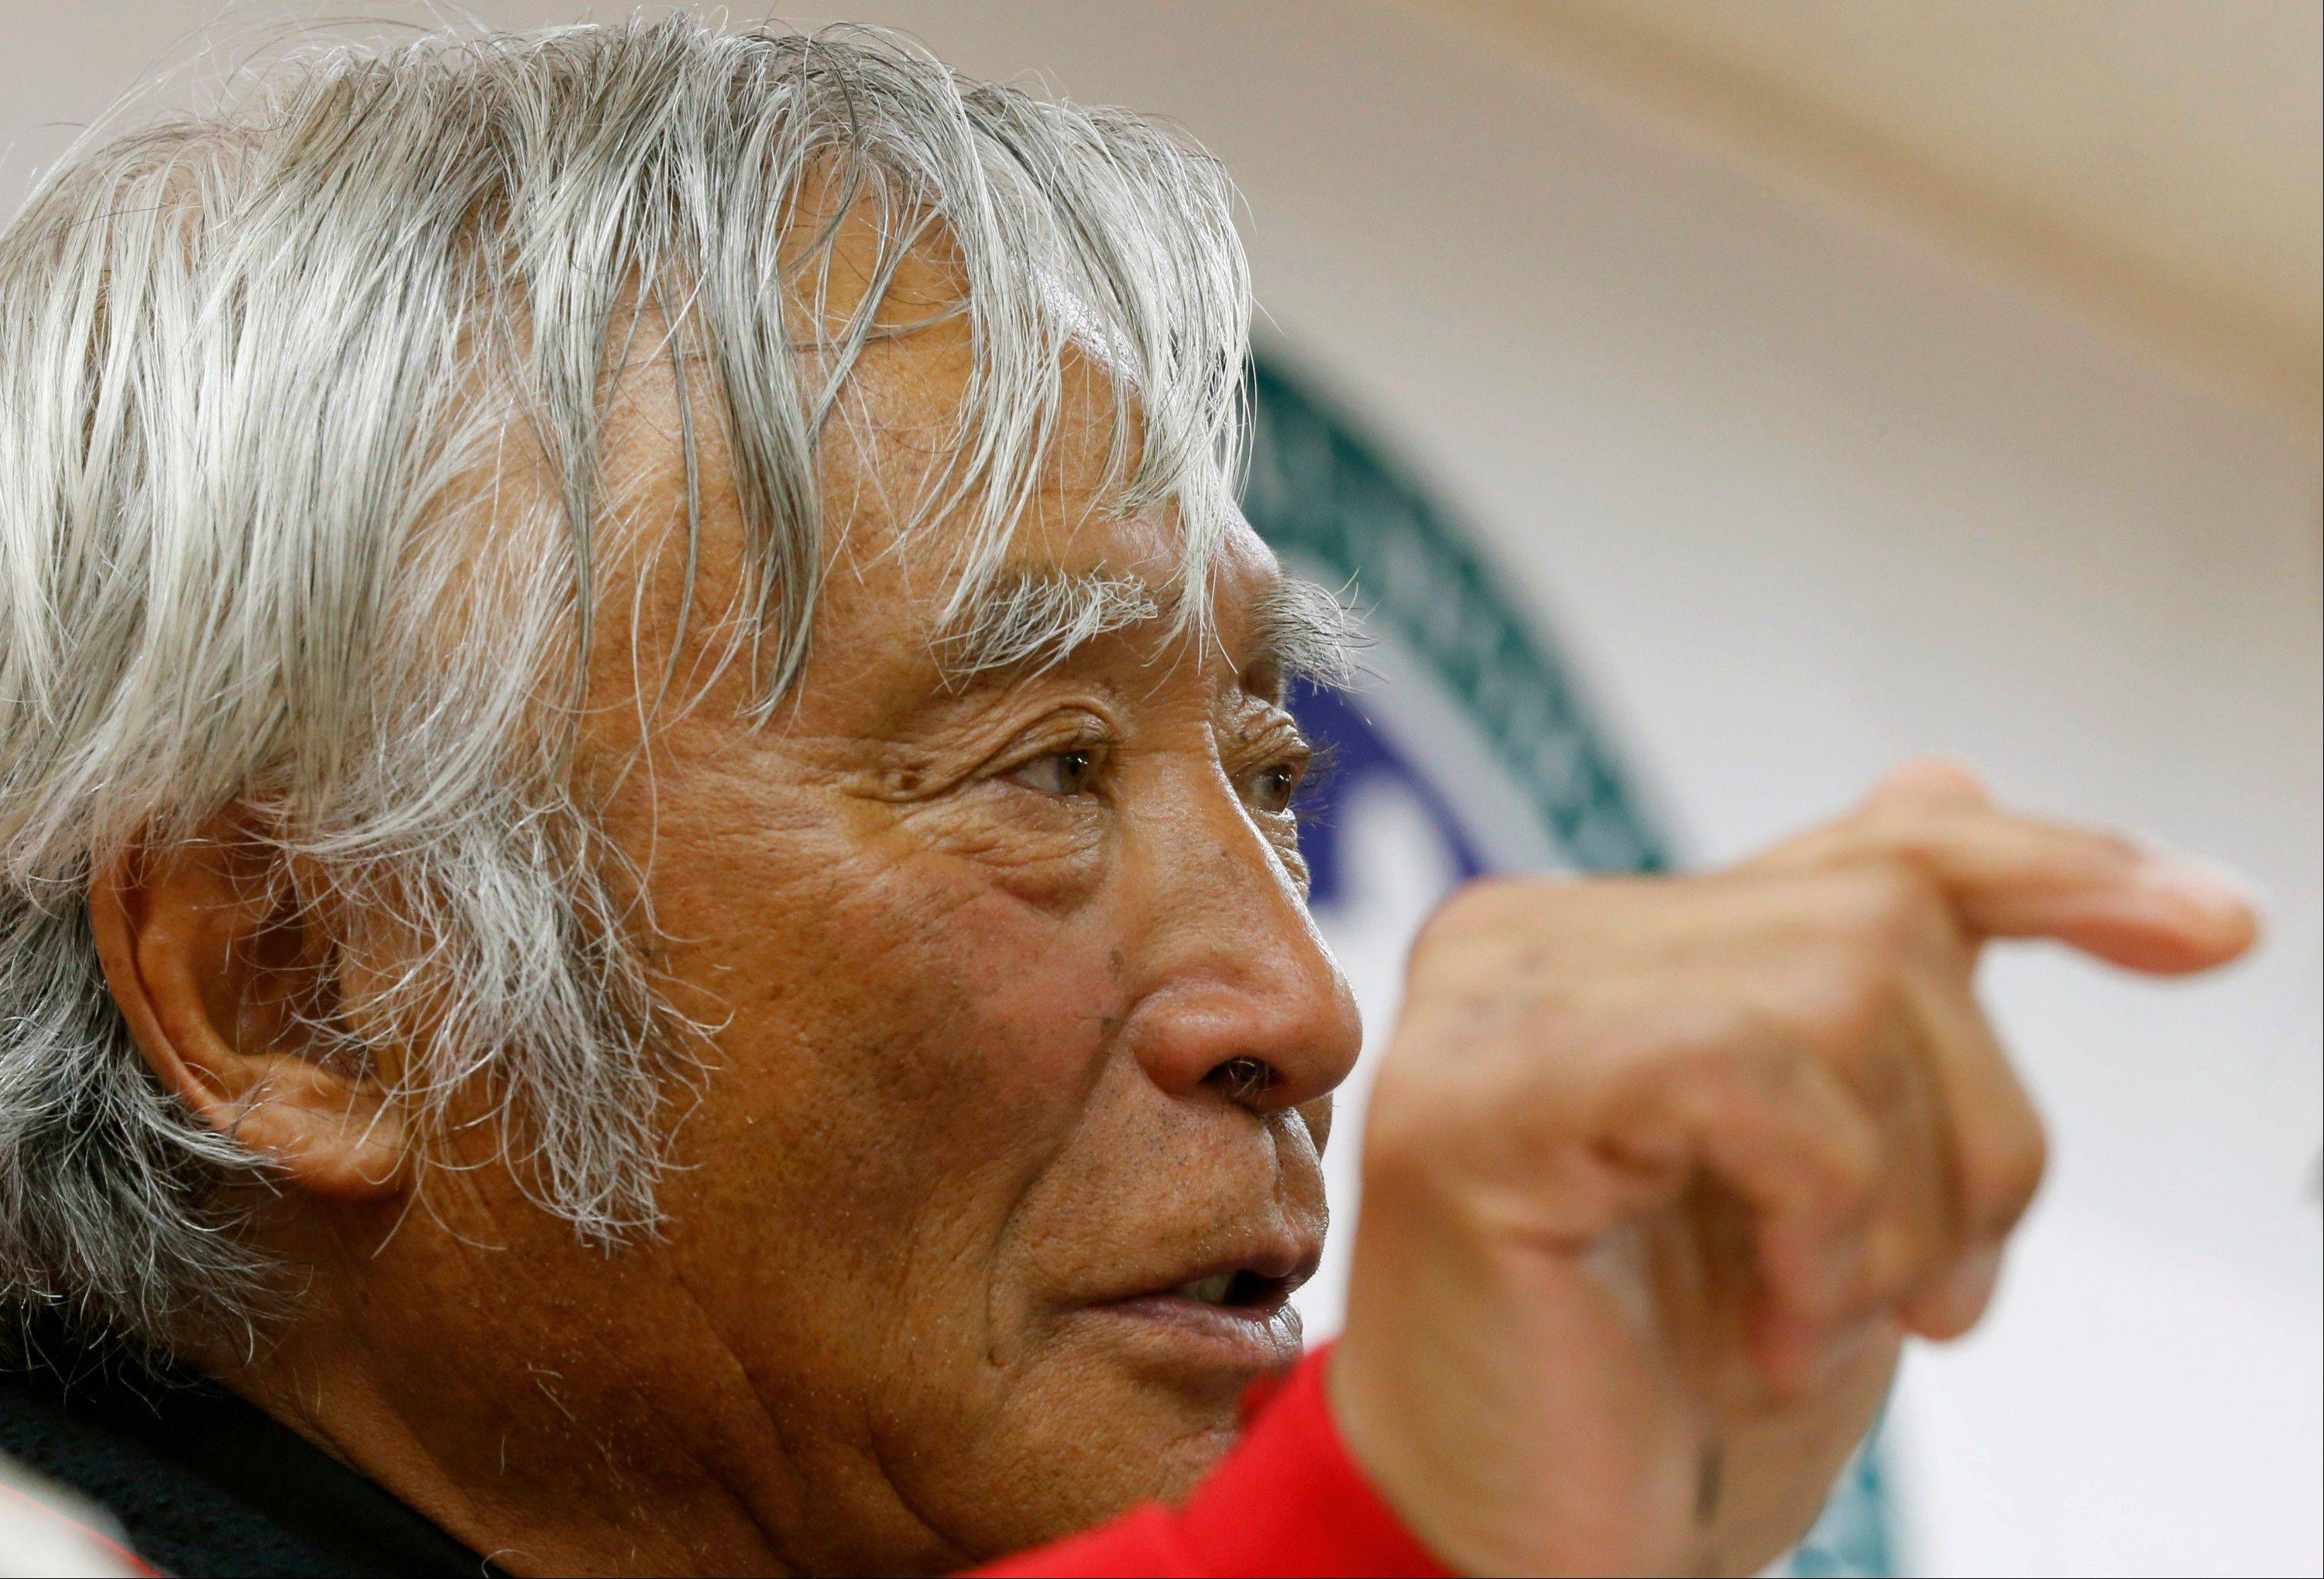 Yuichiro Miura, an 80-year-old Japanese mountaineer who became the oldest person to reach the top of Mount Everest last Thursday, says he almost died during his descent and does not plan another climb of the world's highest peak, though he hopes to do plenty of skiing.